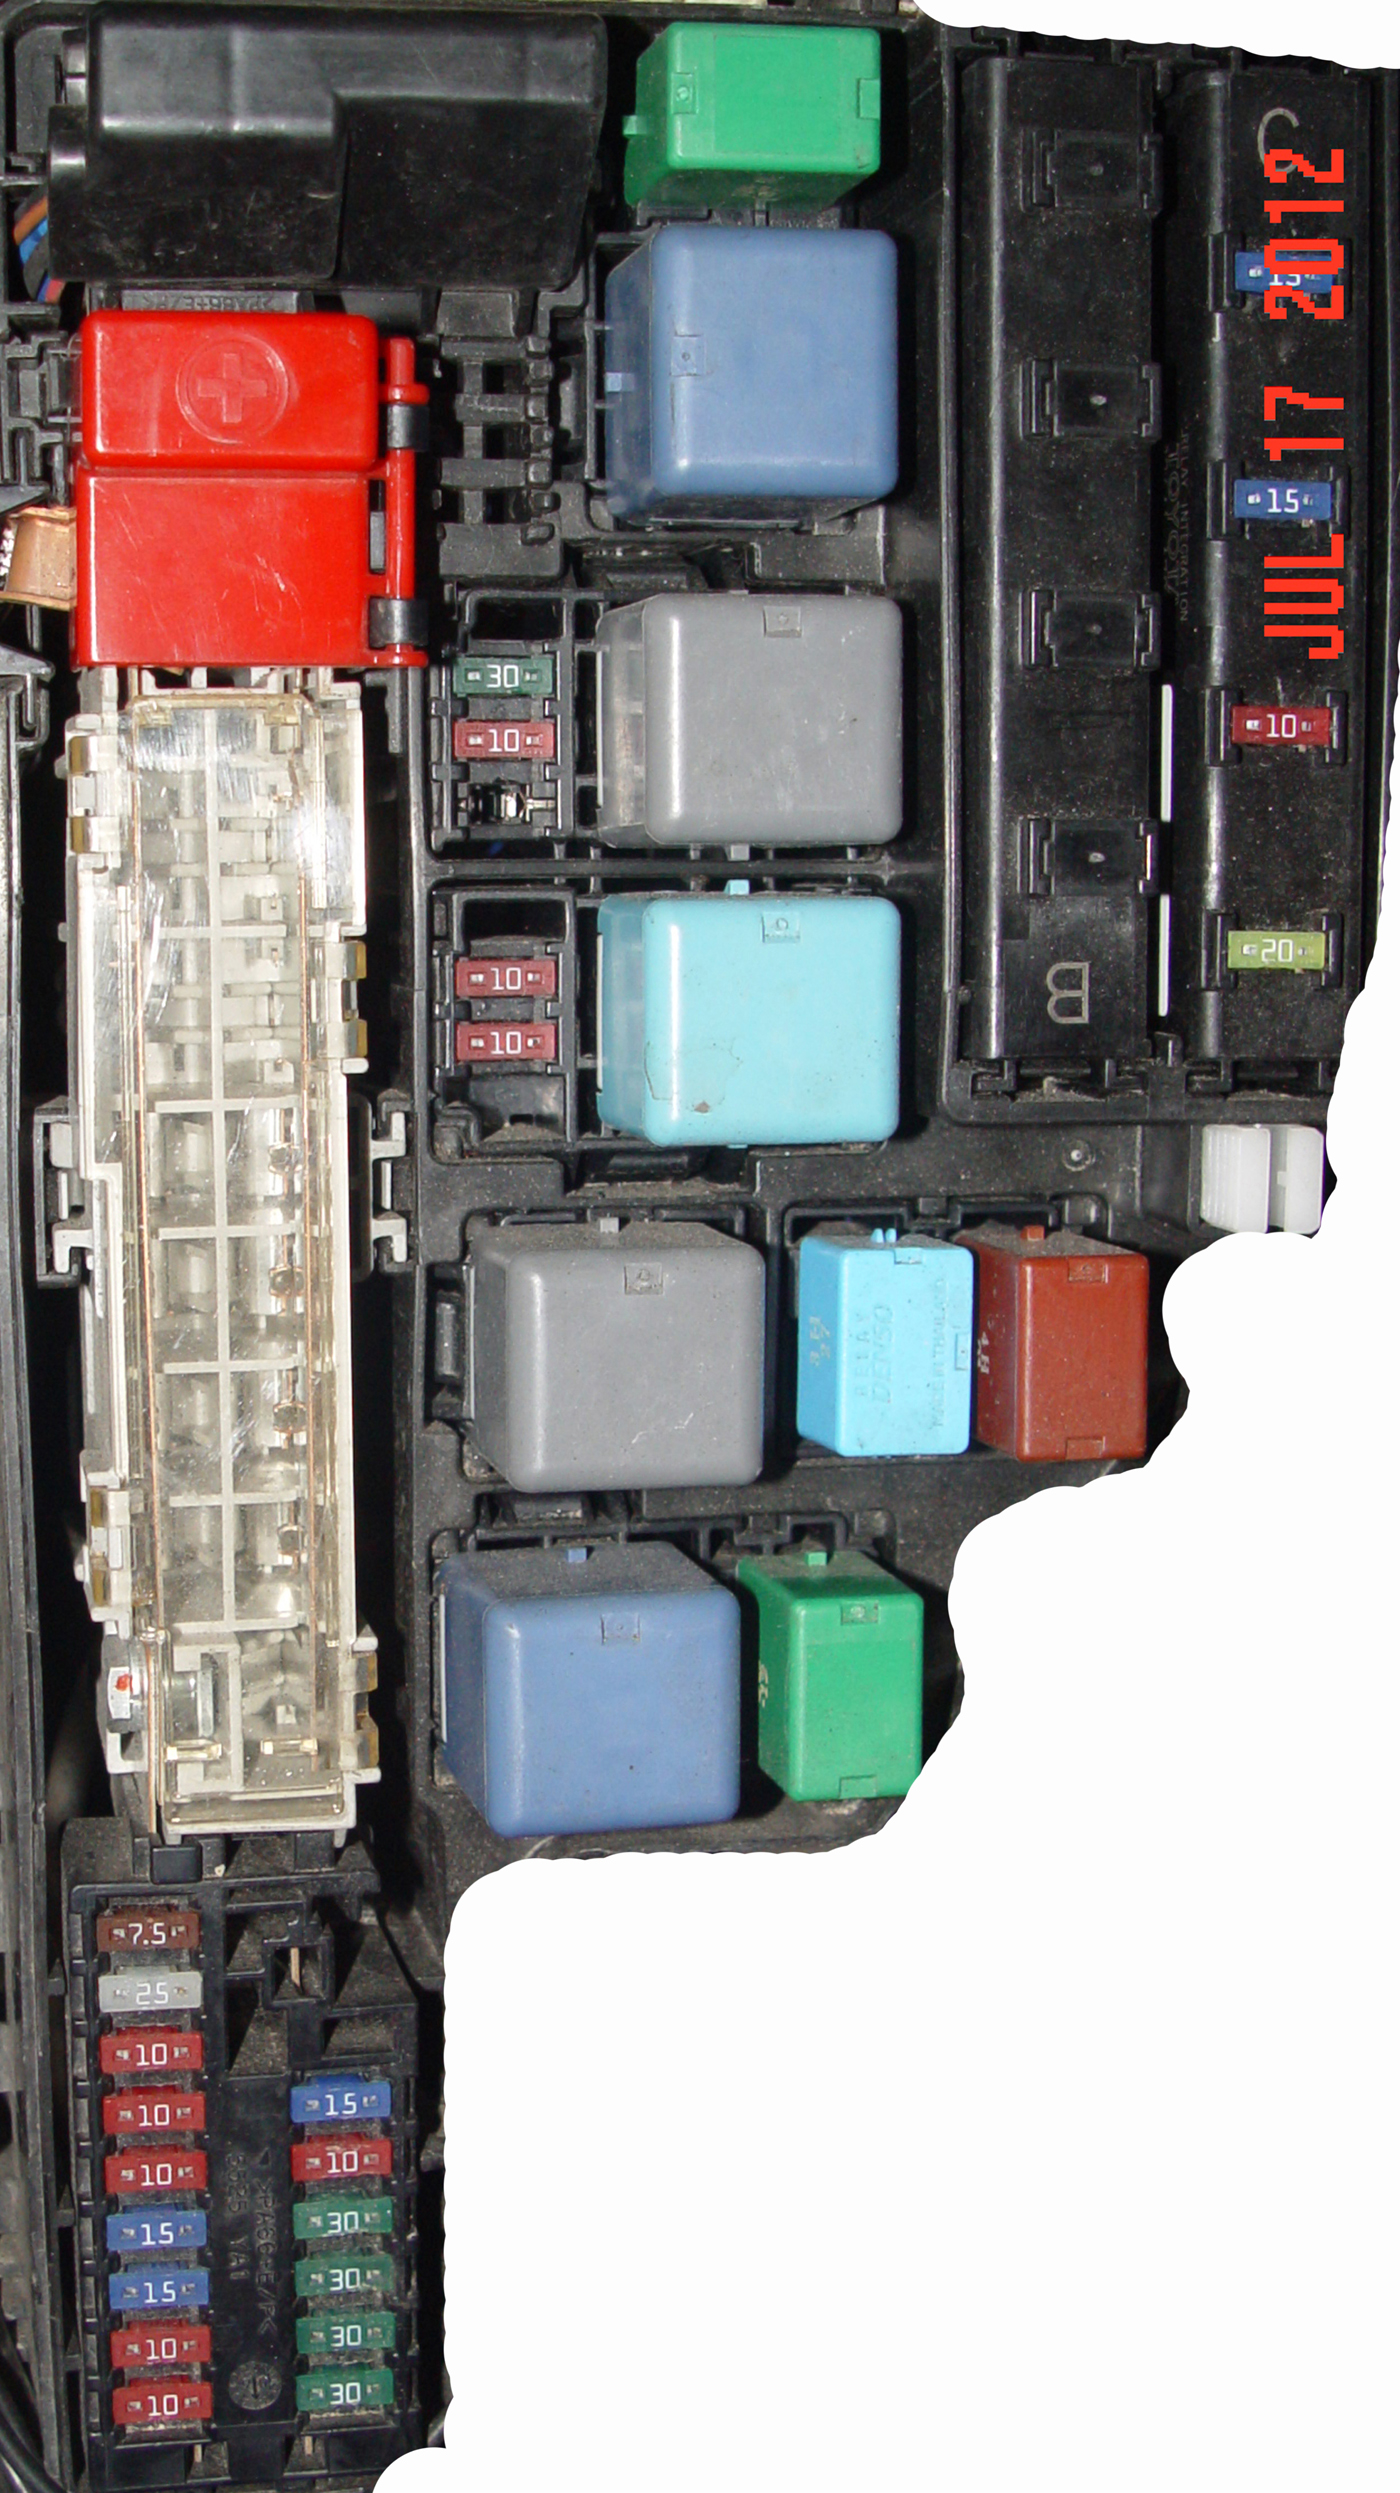 2004 toyota prius fuse box diagram iirGtIL 2004 toyota prius fuse box diagram image details 2013 toyota prius fuse box diagram at soozxer.org